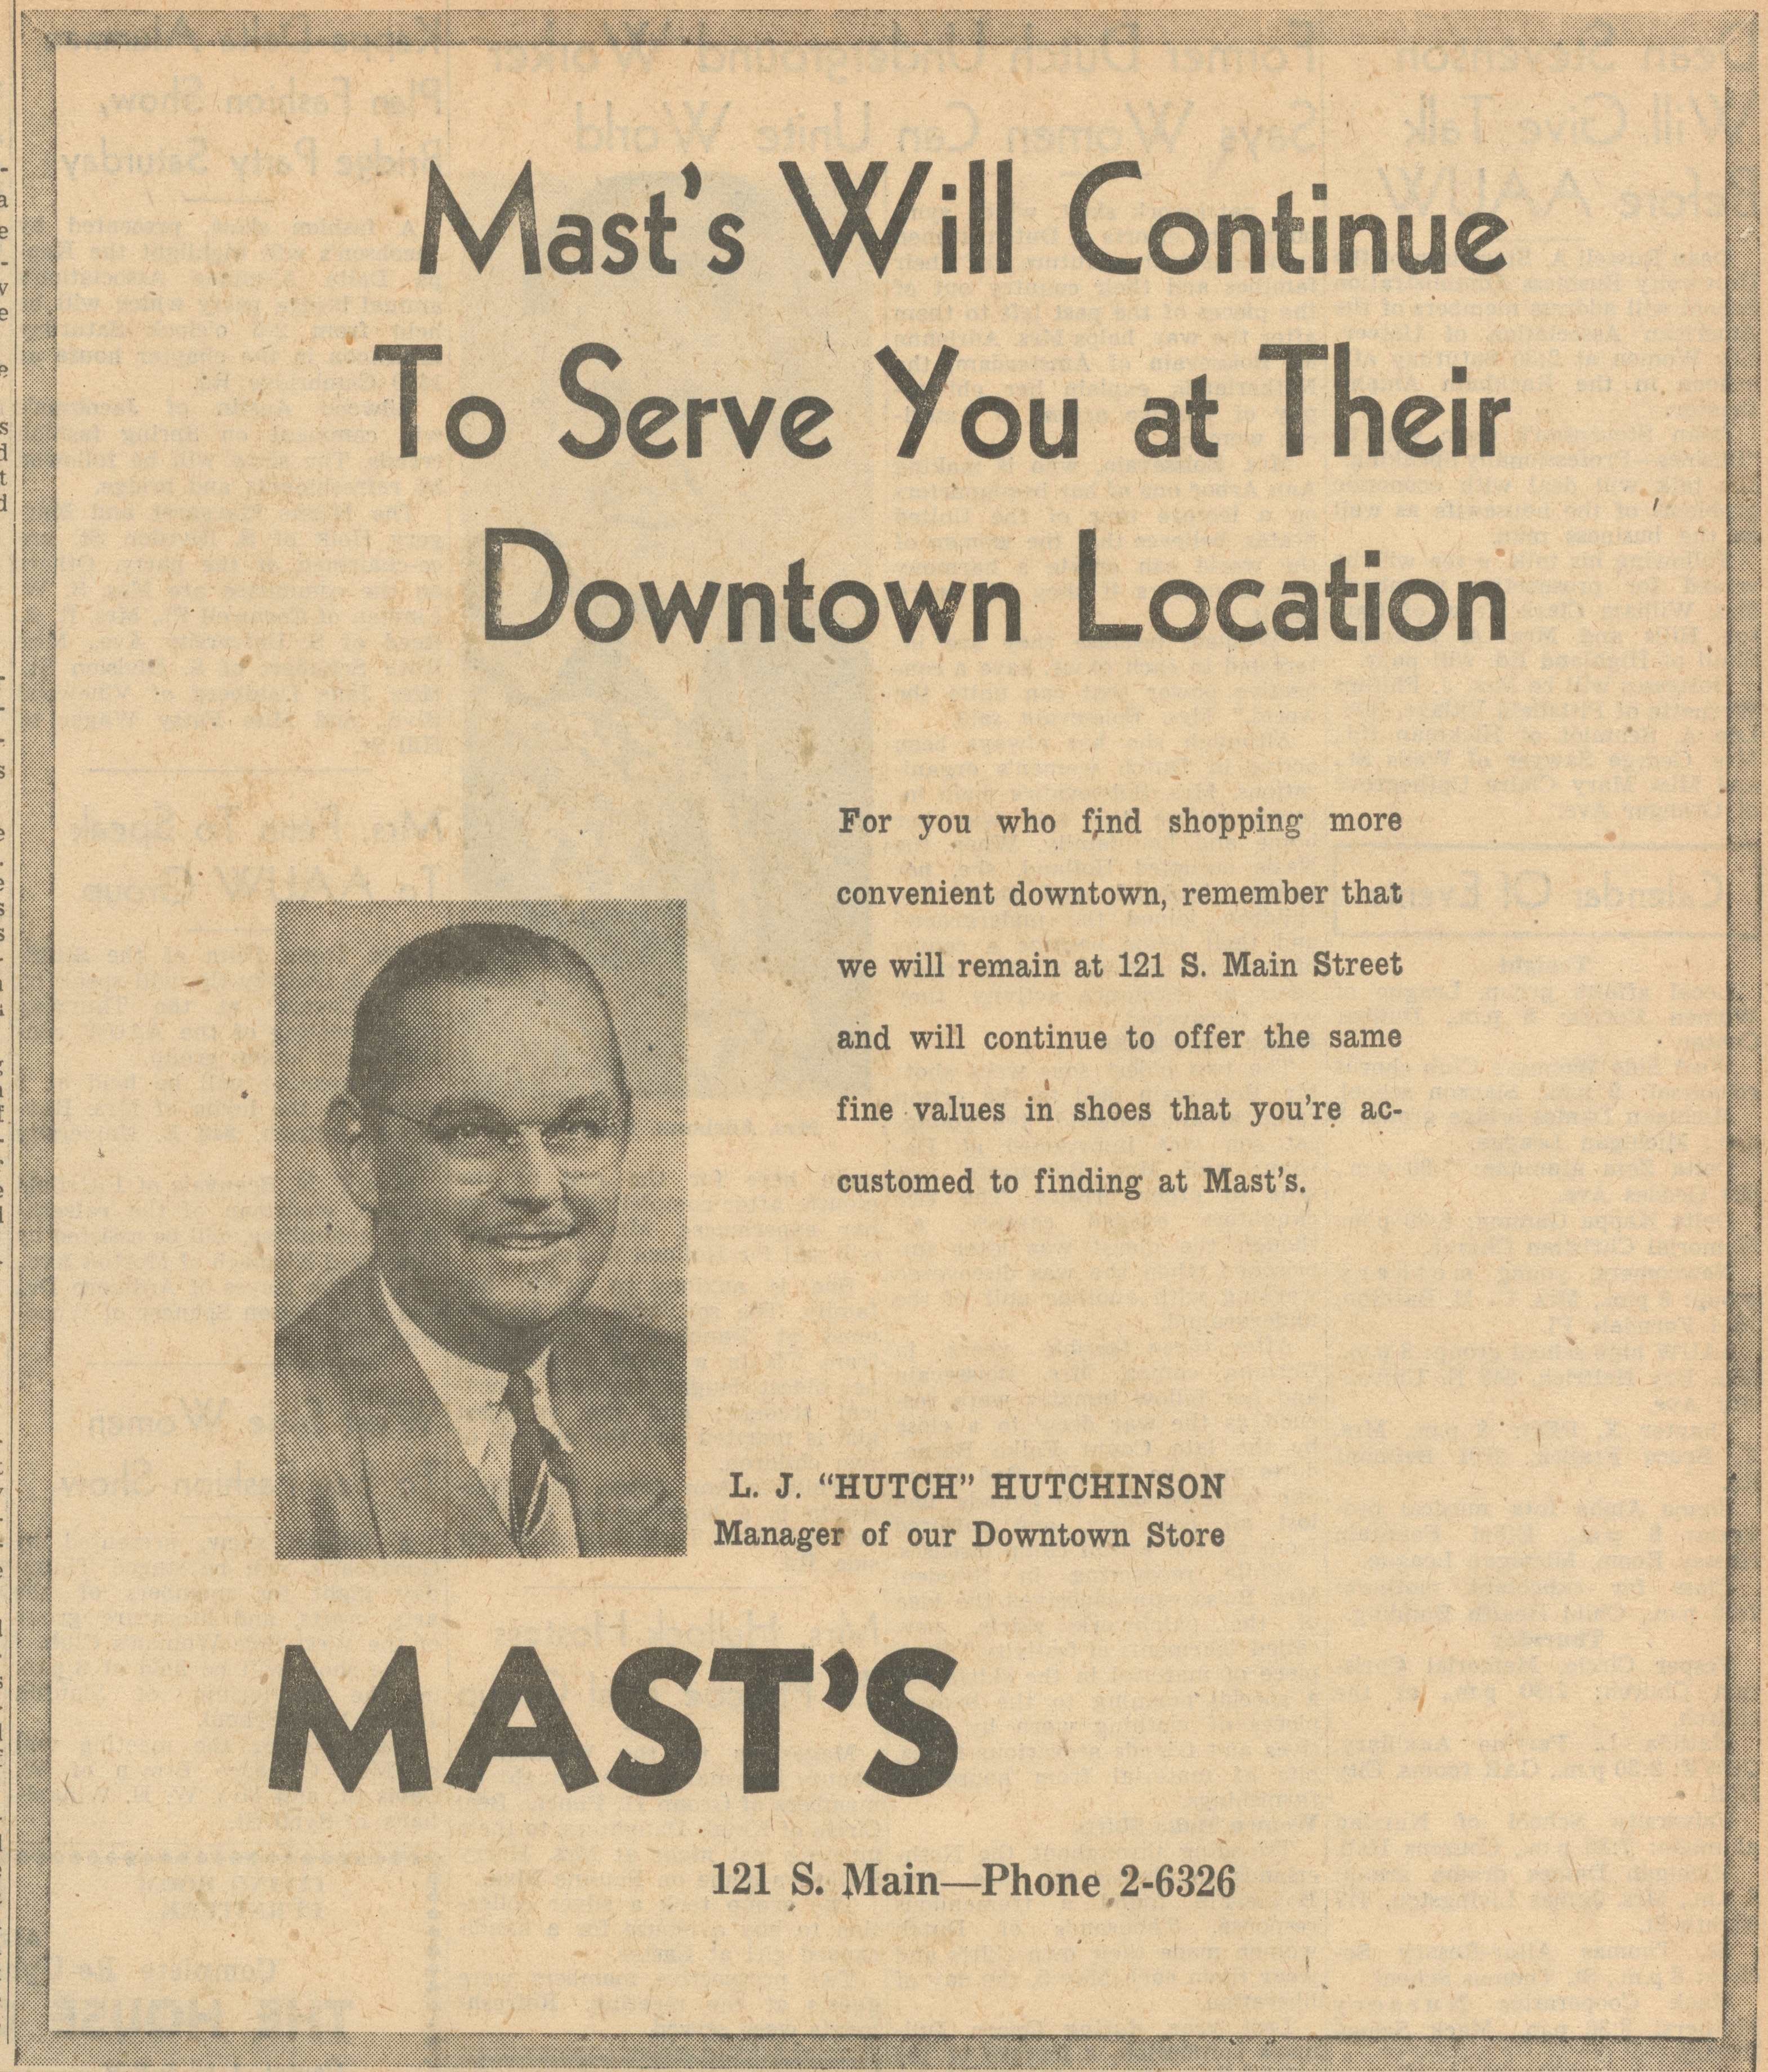 Mast's Will Continue To Serve You At Their Downtown Location image